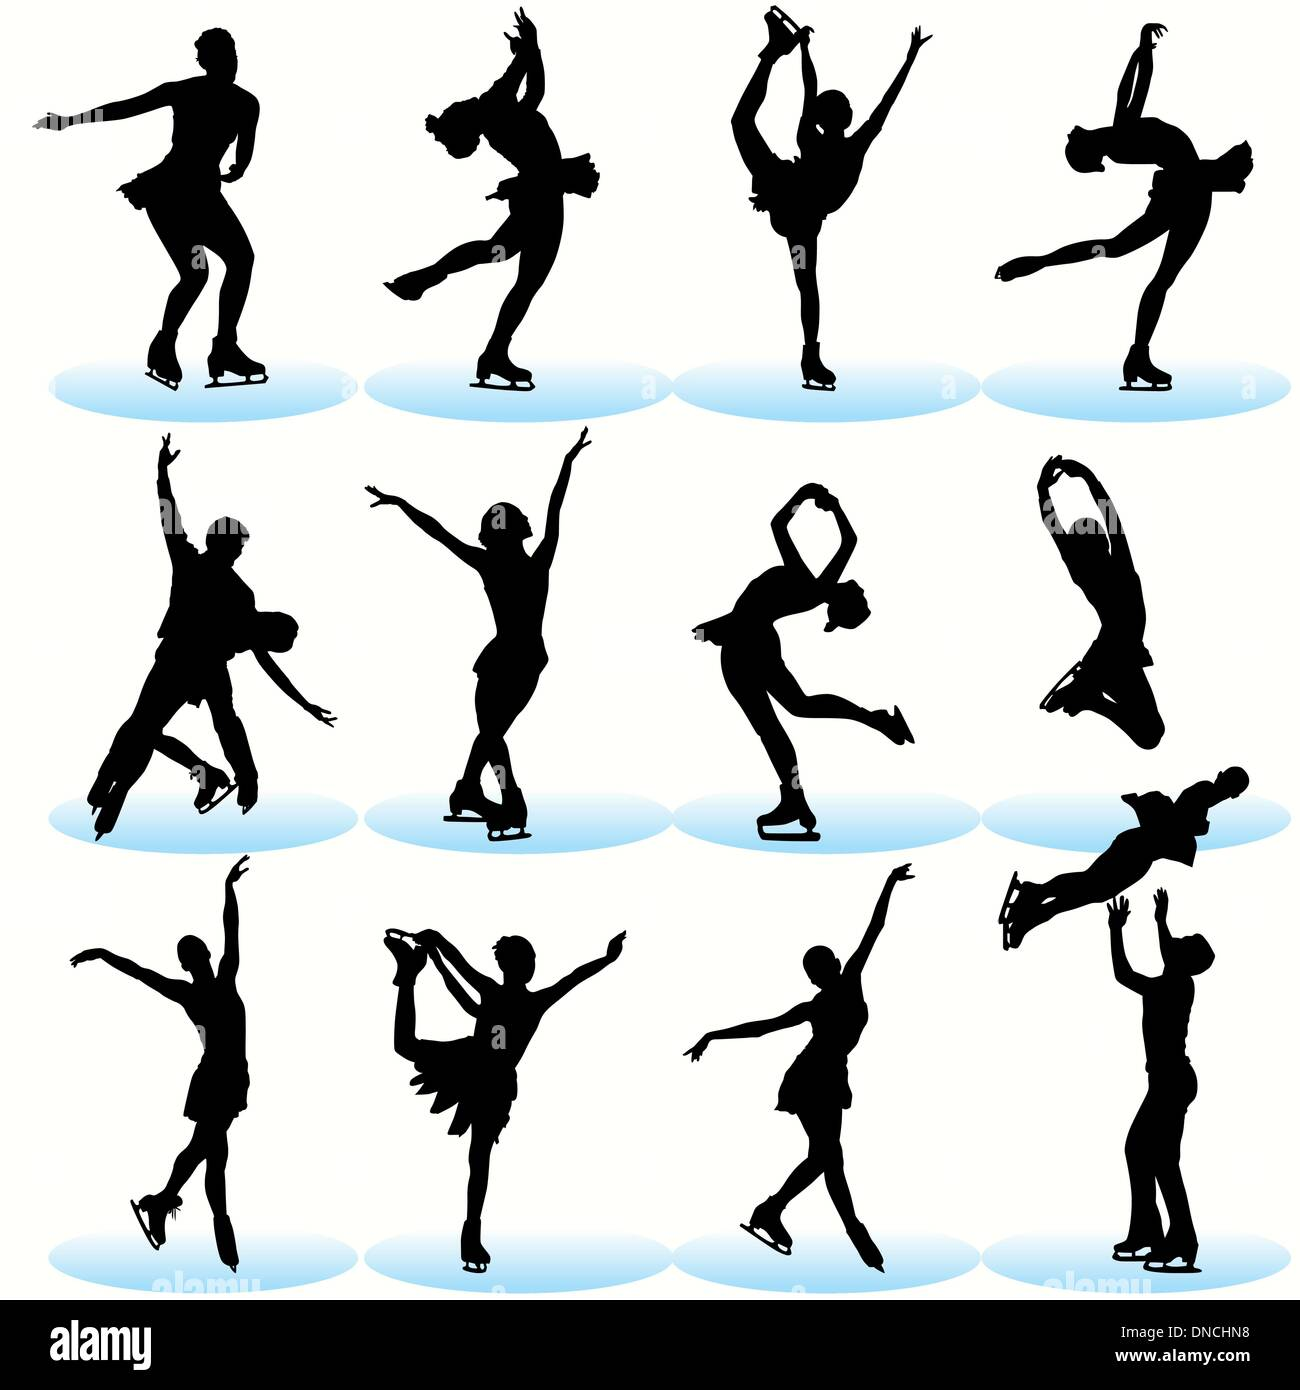 Figure skating silhouettes set - Stock Vector